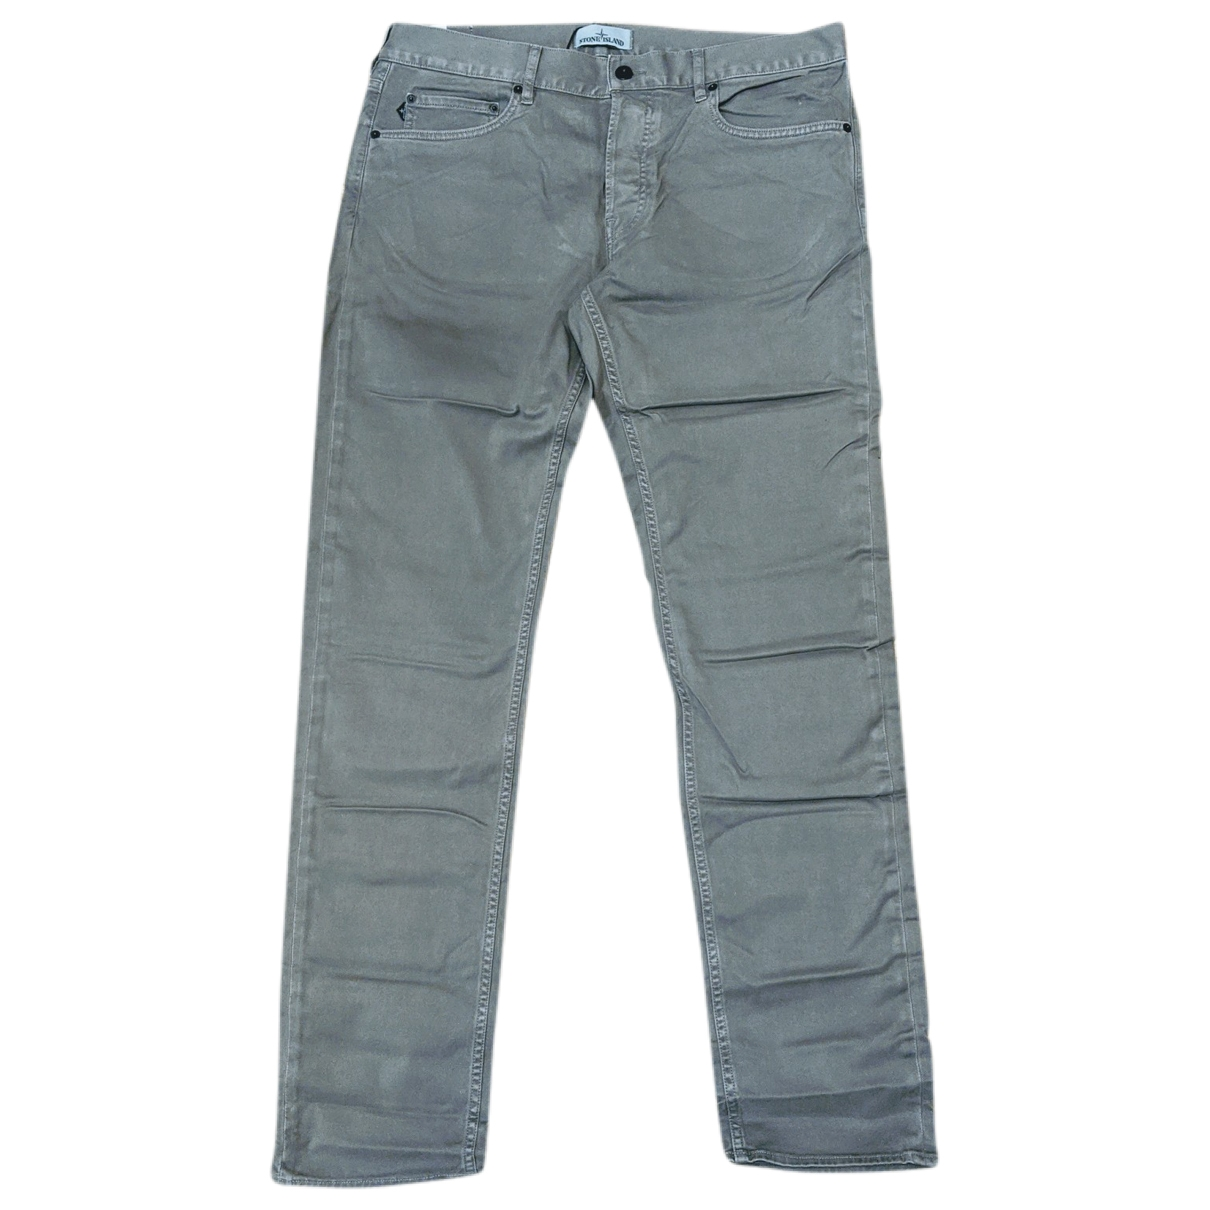 Stone Island \N Grey Cotton Trousers for Men 36 UK - US